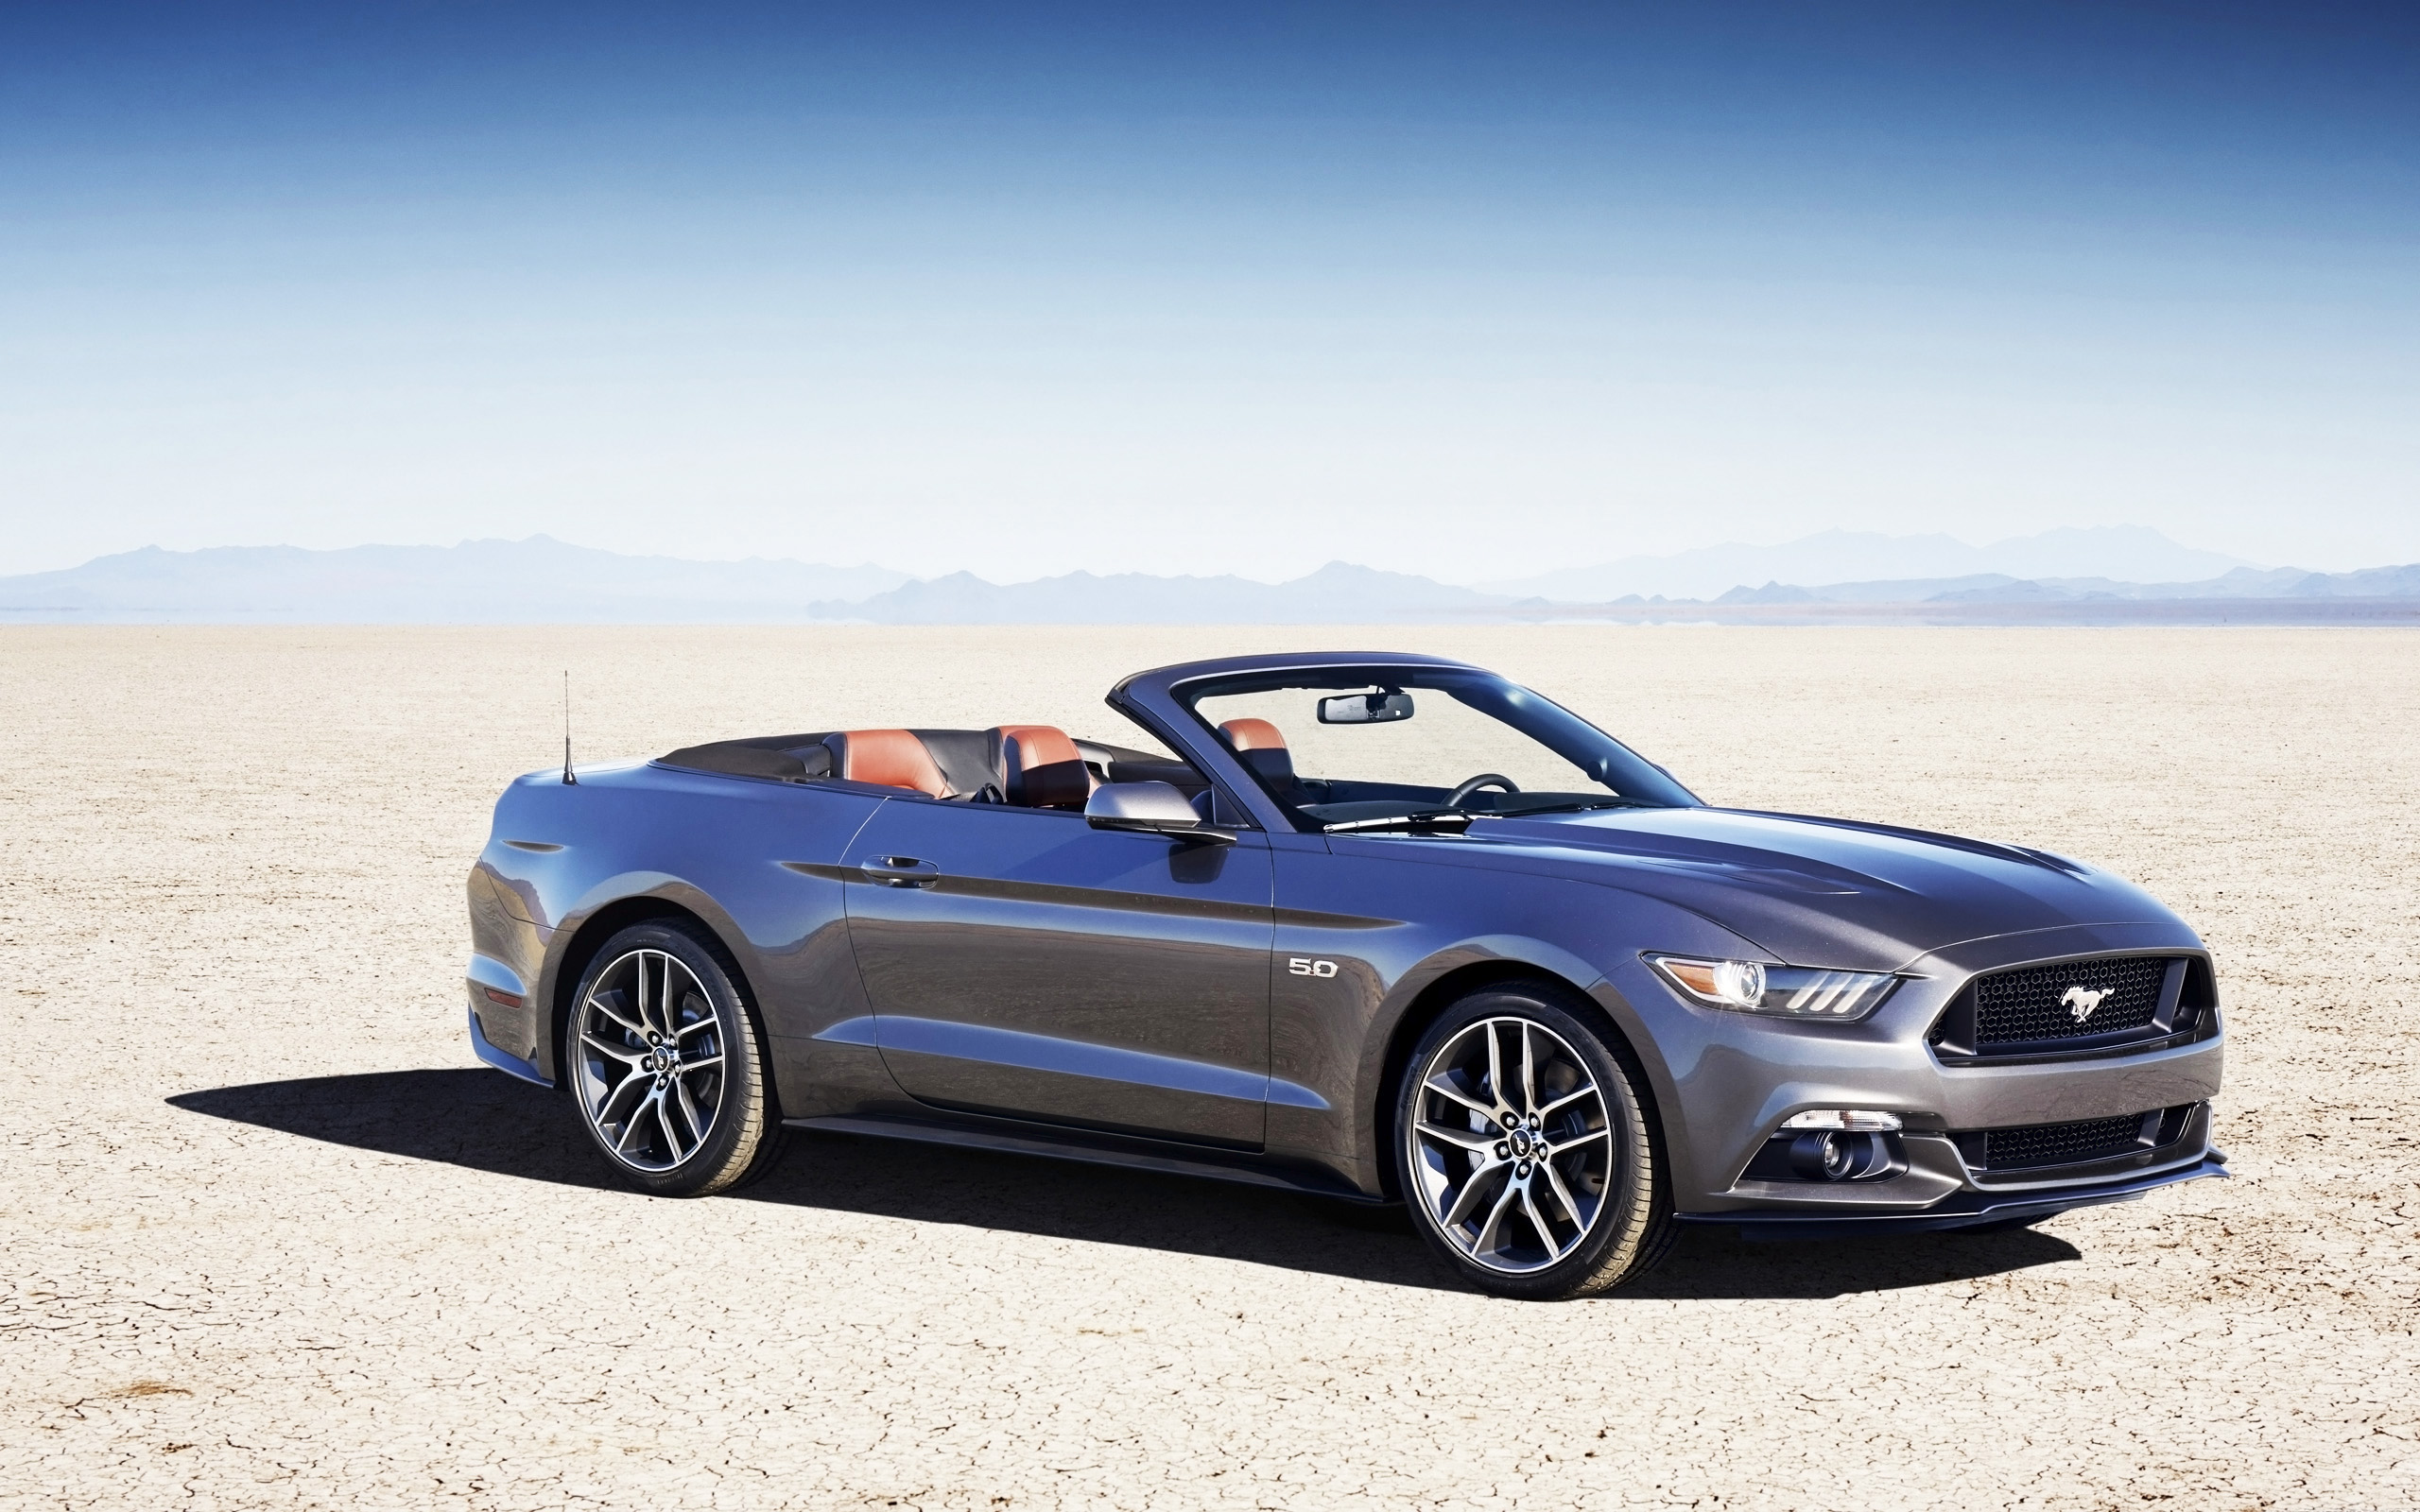 2560x1600 - Ford Convertible Wallpapers 3